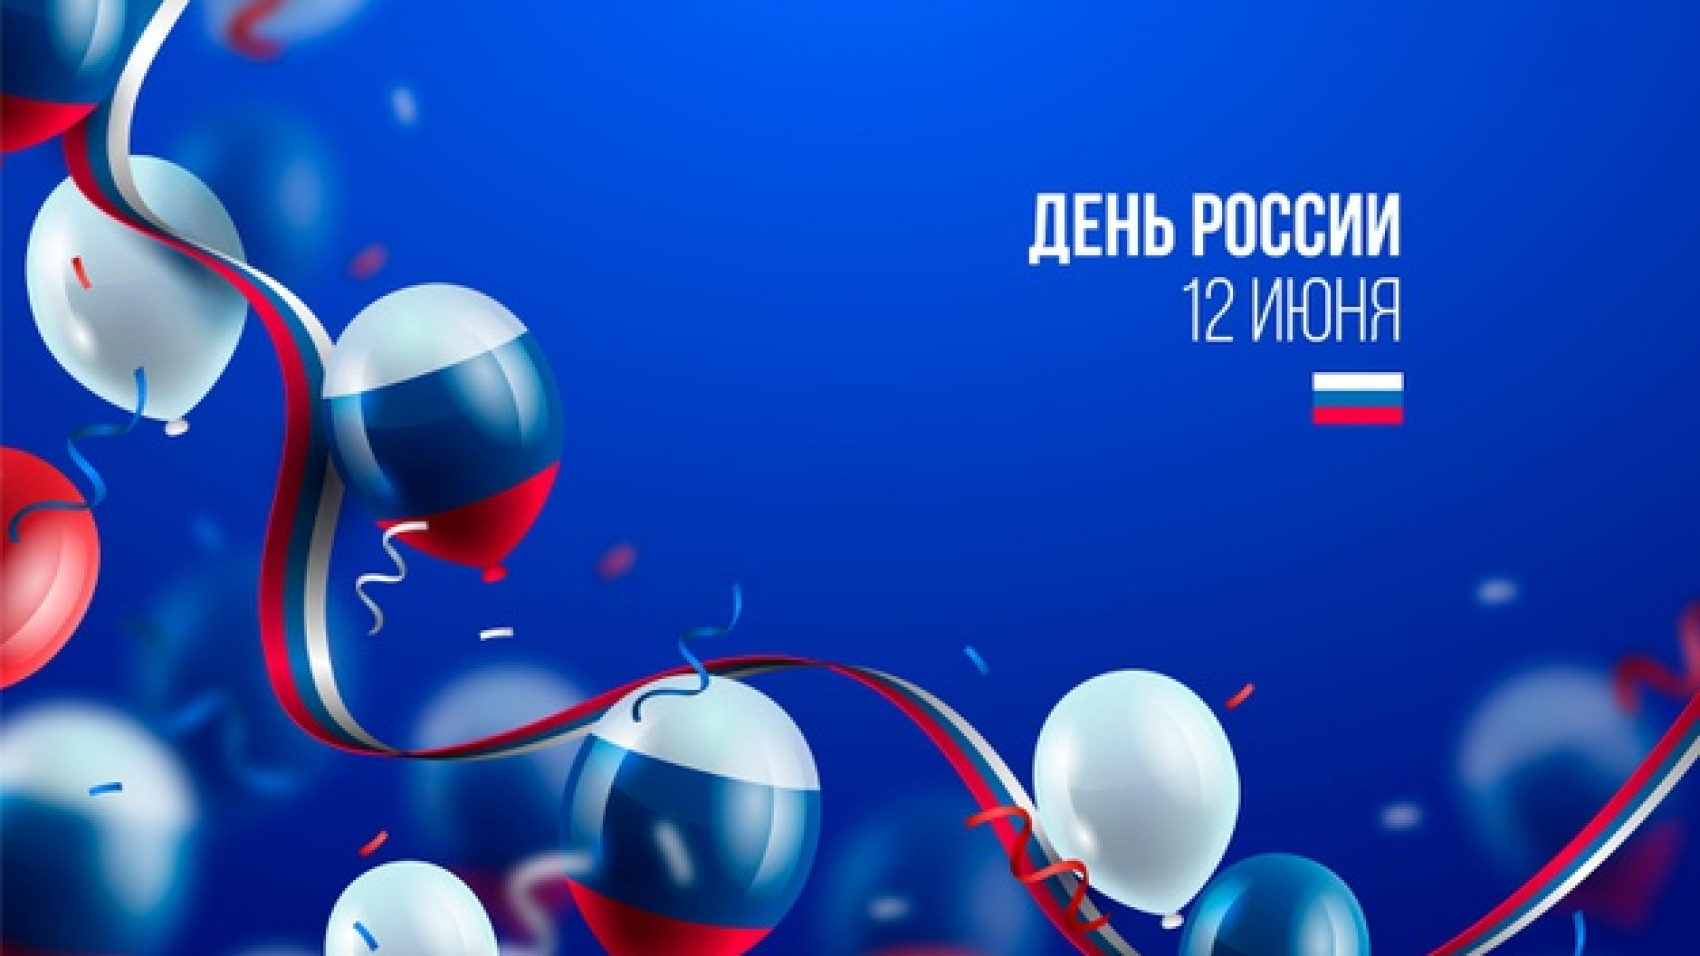 realistic-russia-day-background-with-balloons_52683-62546